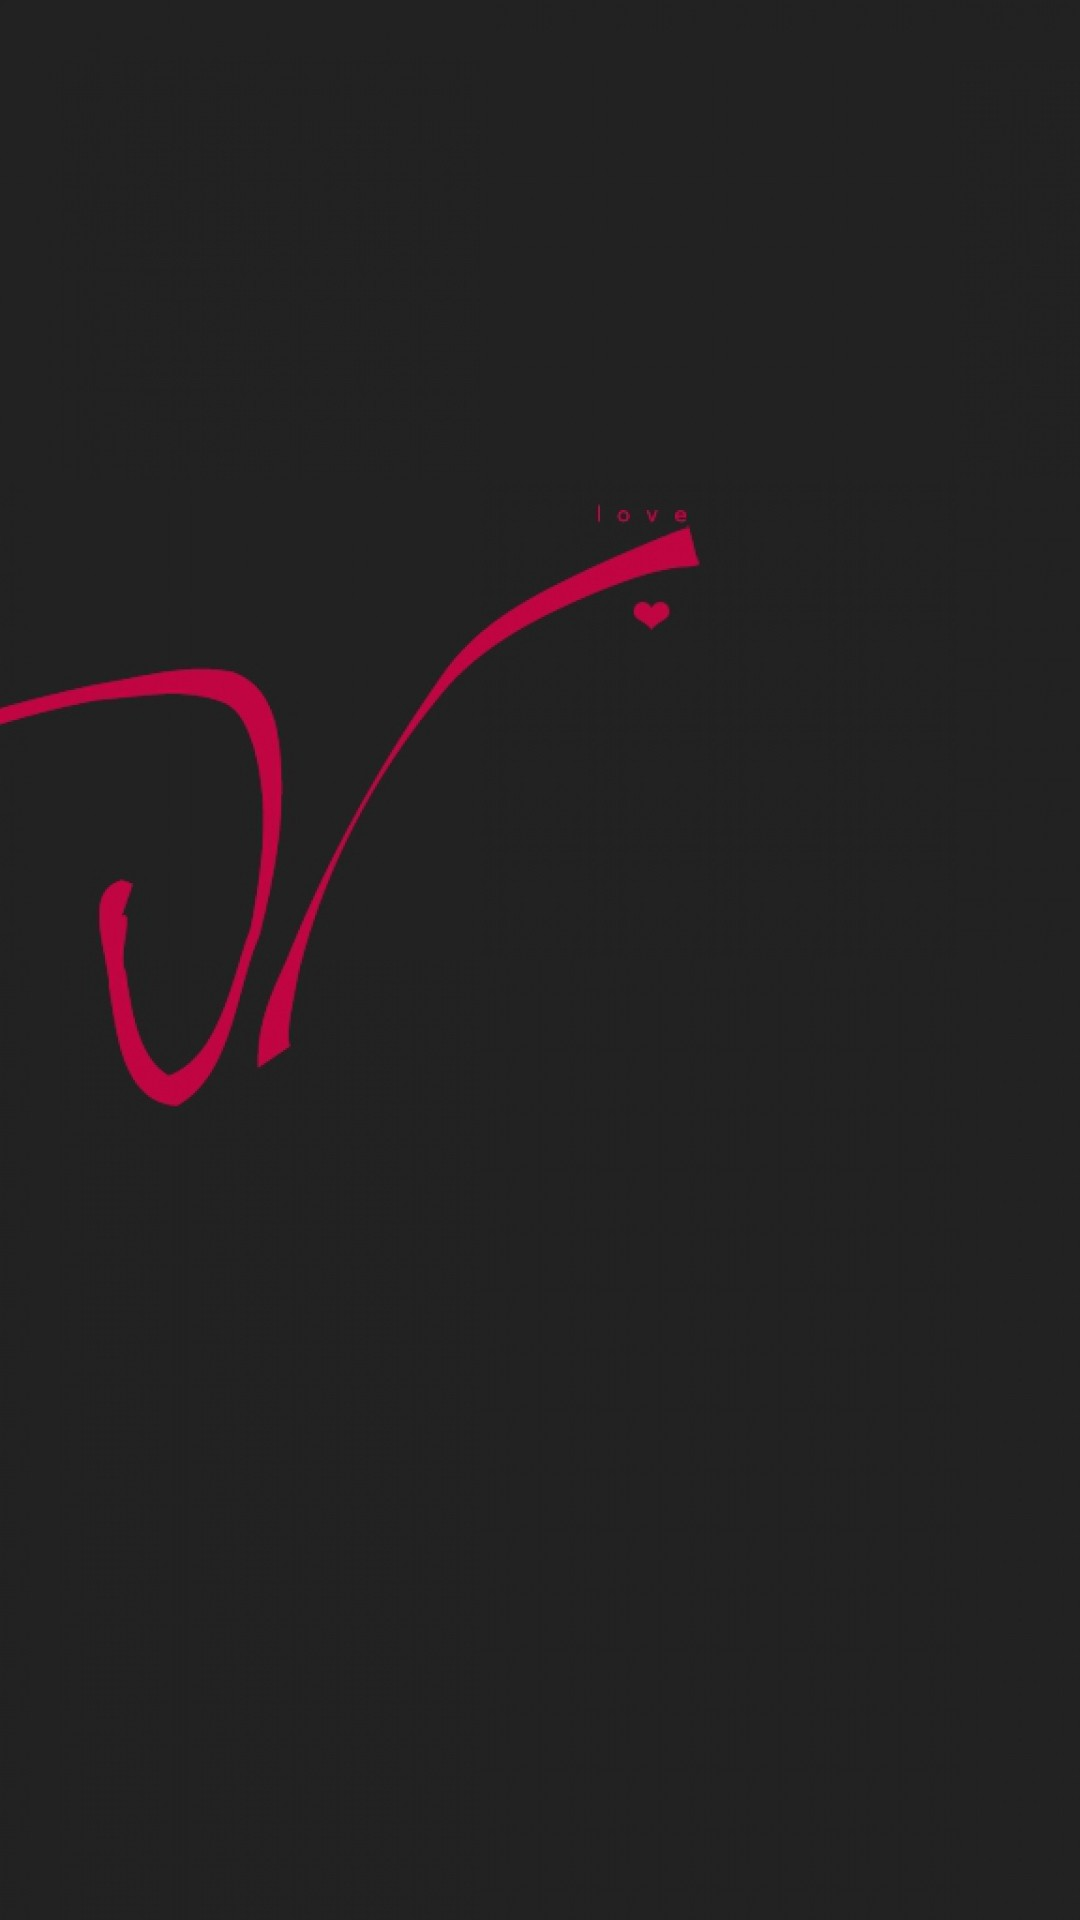 Preview wallpaper love, drawing, line, red, inscription, black 1080×1920